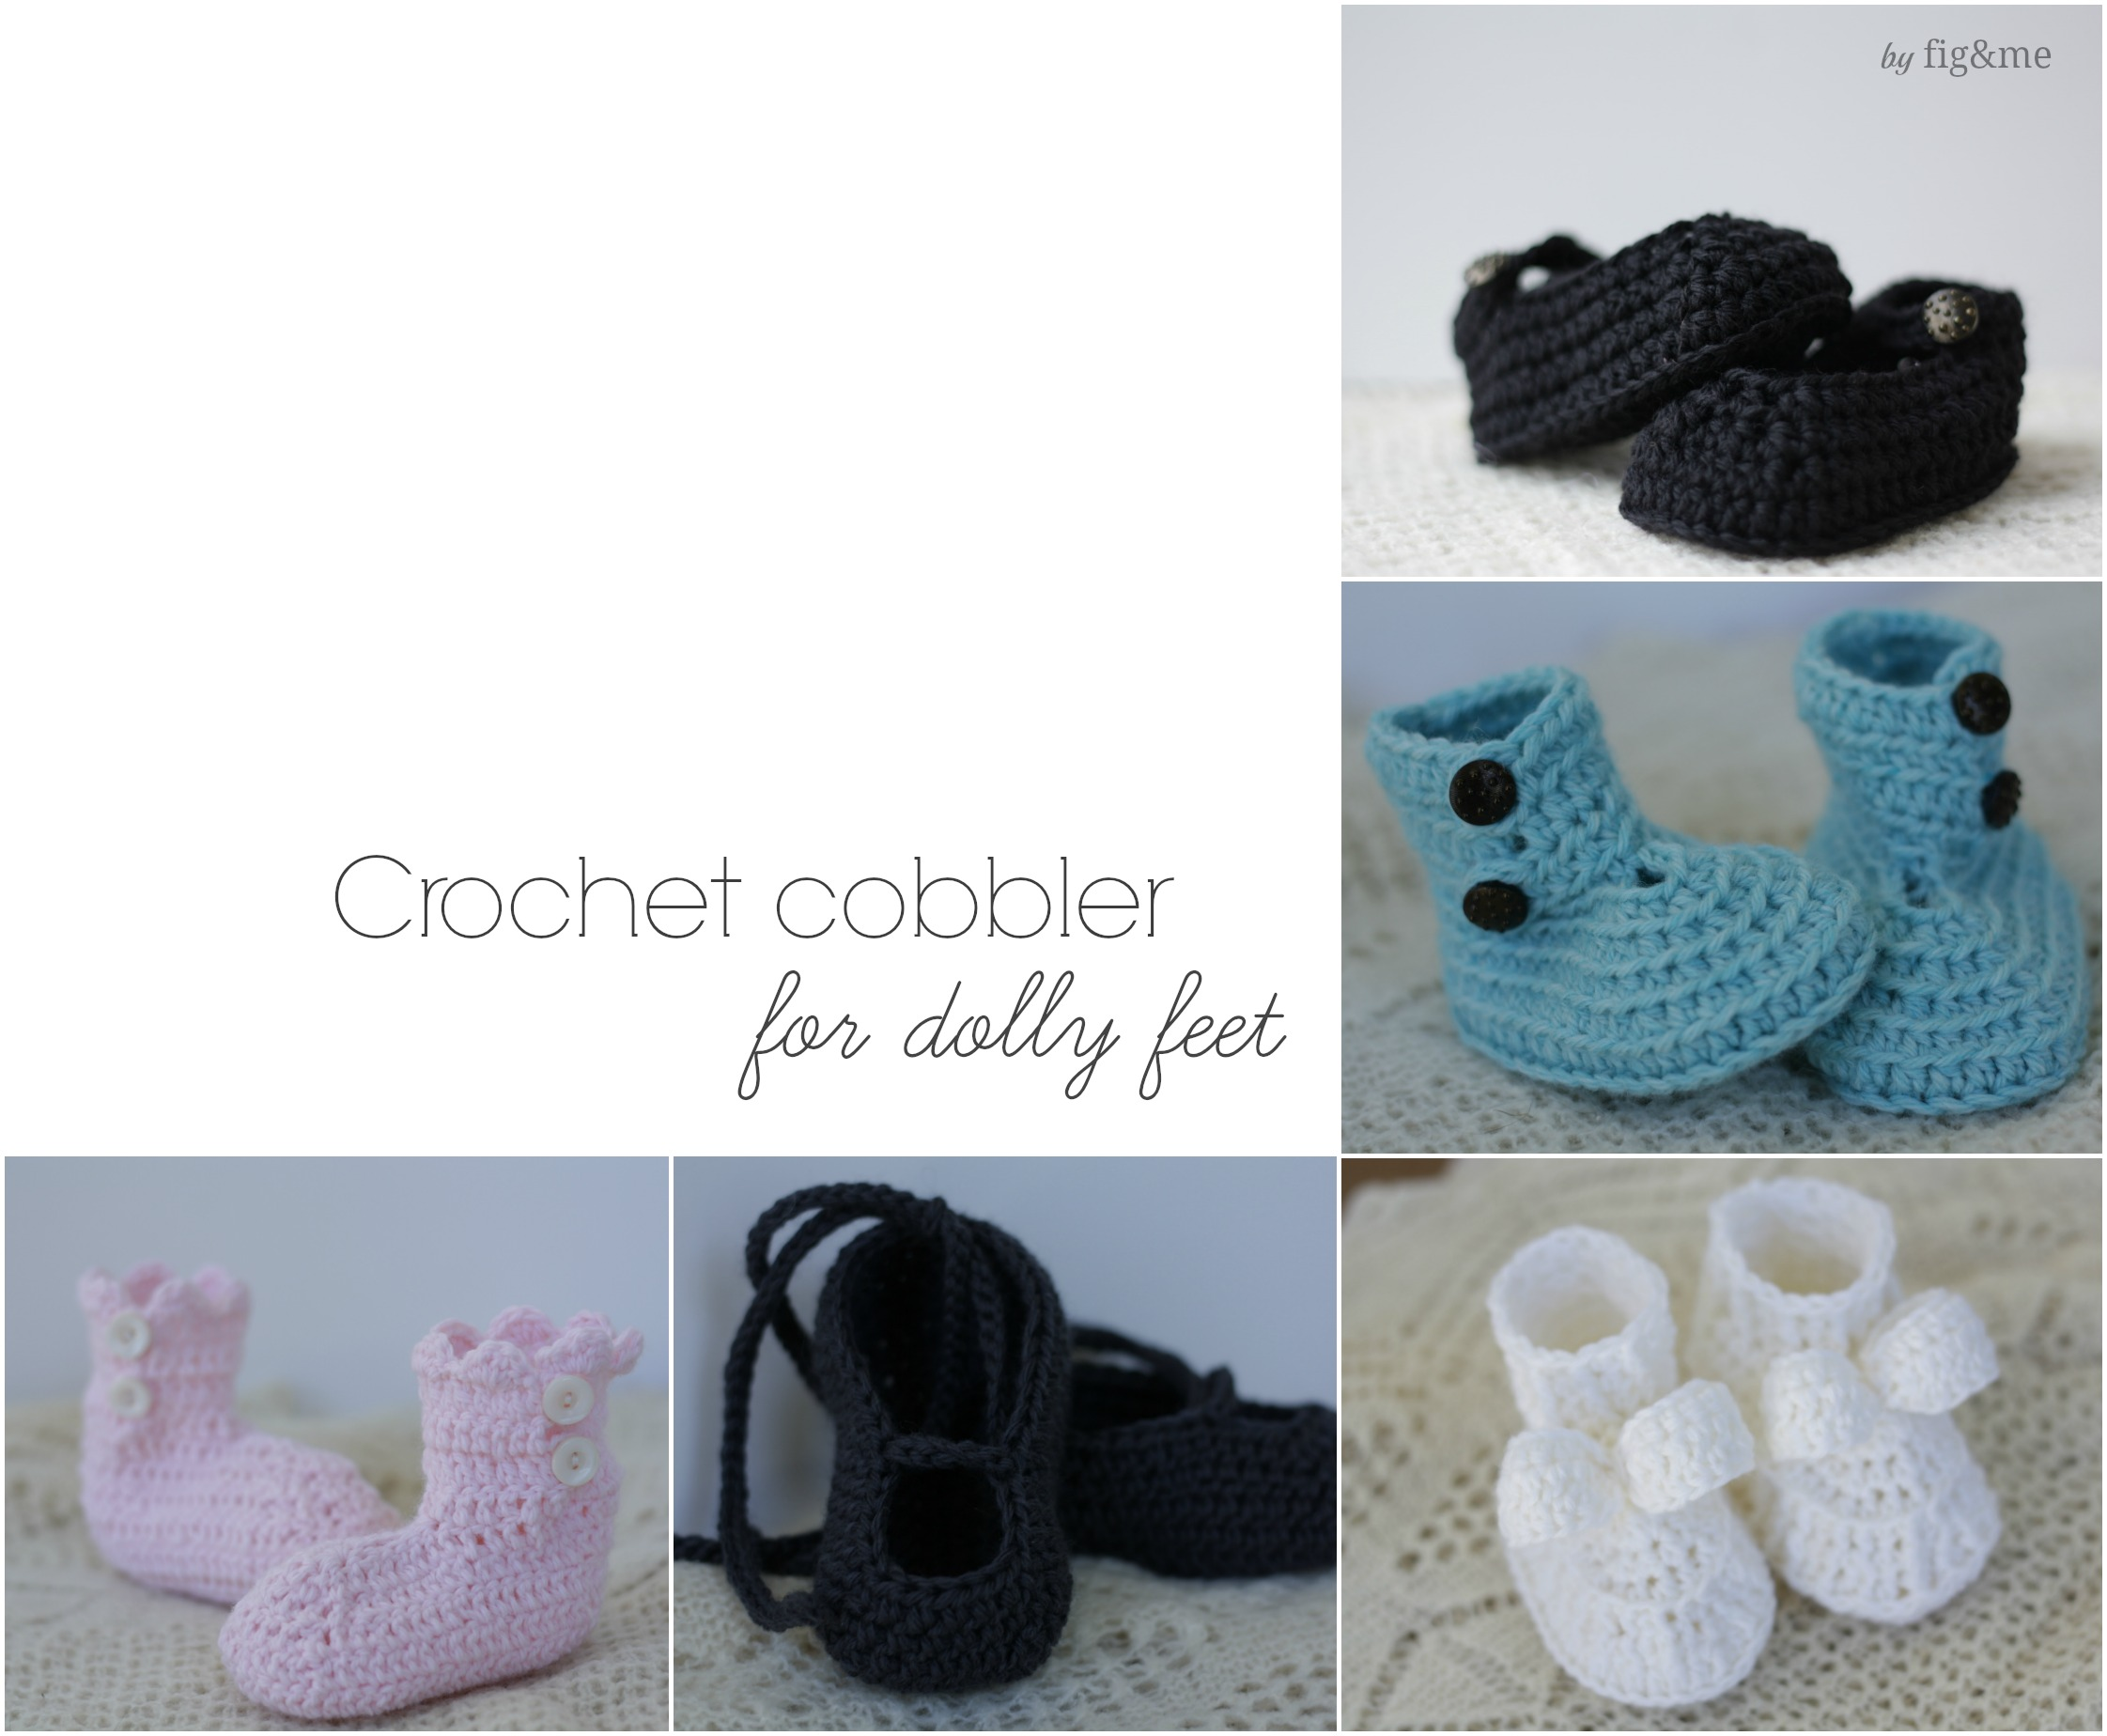 The doll cobbler, by Fig&me.